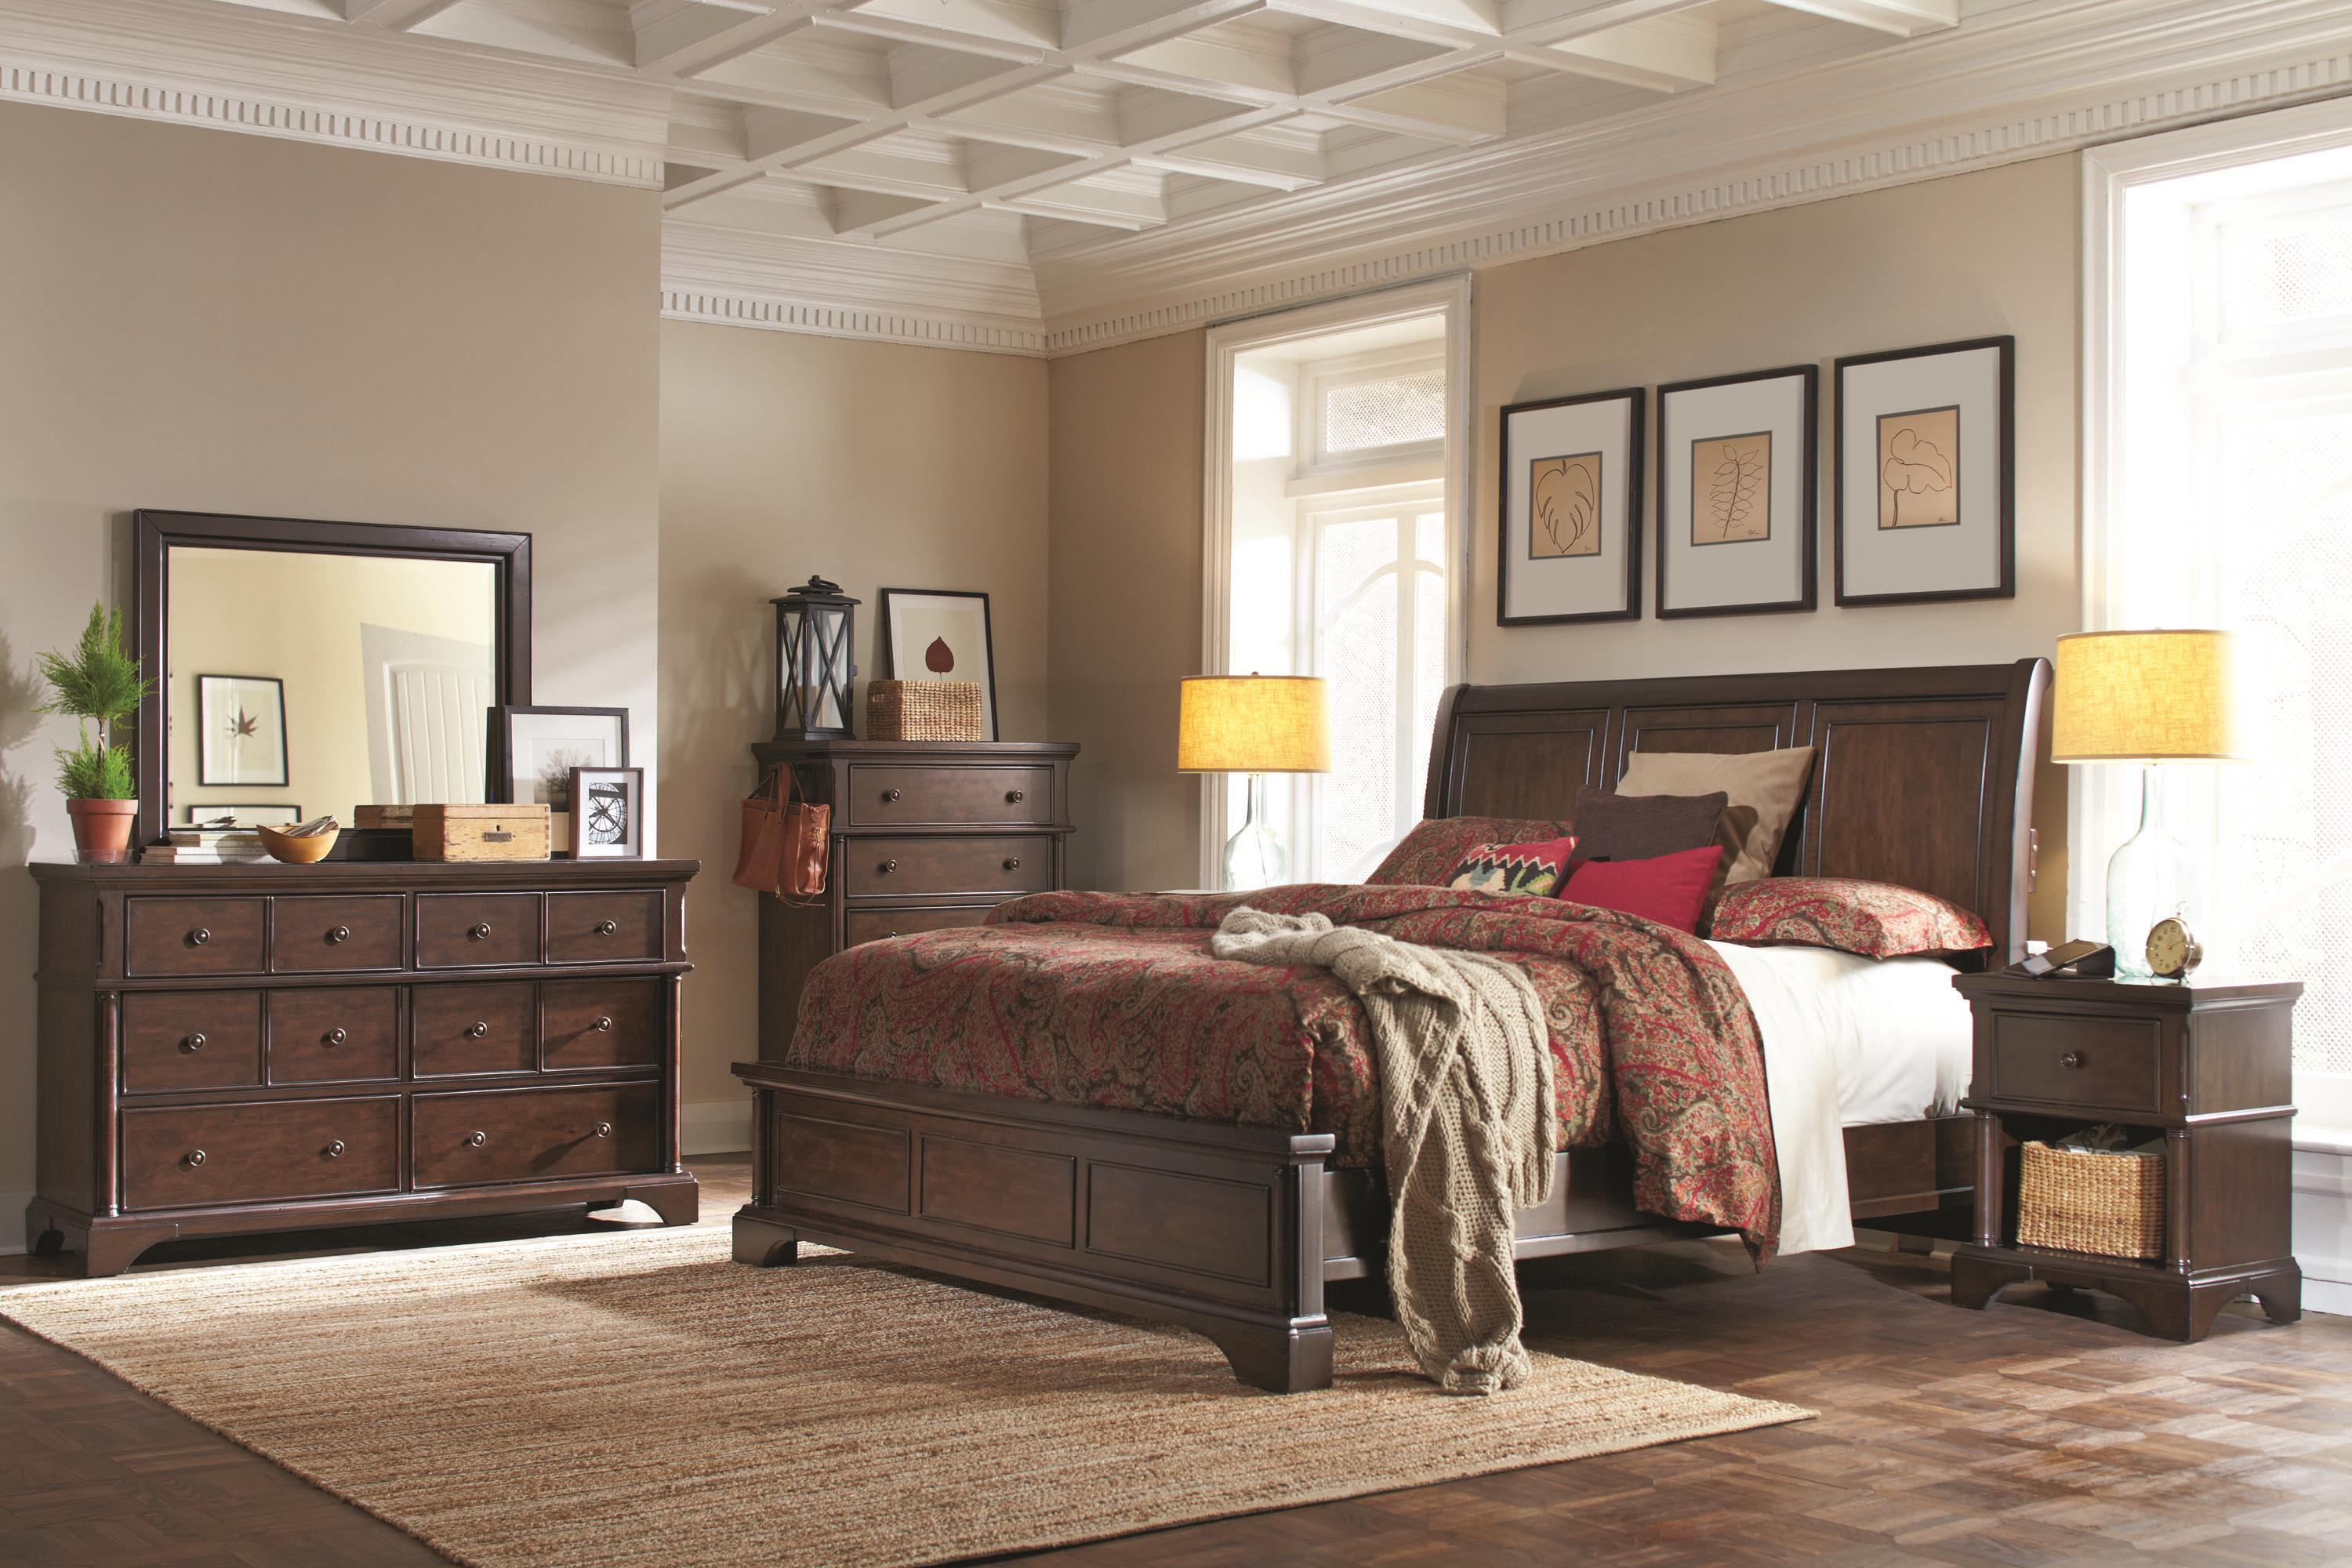 Aspenhome Bancroft King Bedroom Group - Item Number: I08 K Bedroom Group 1